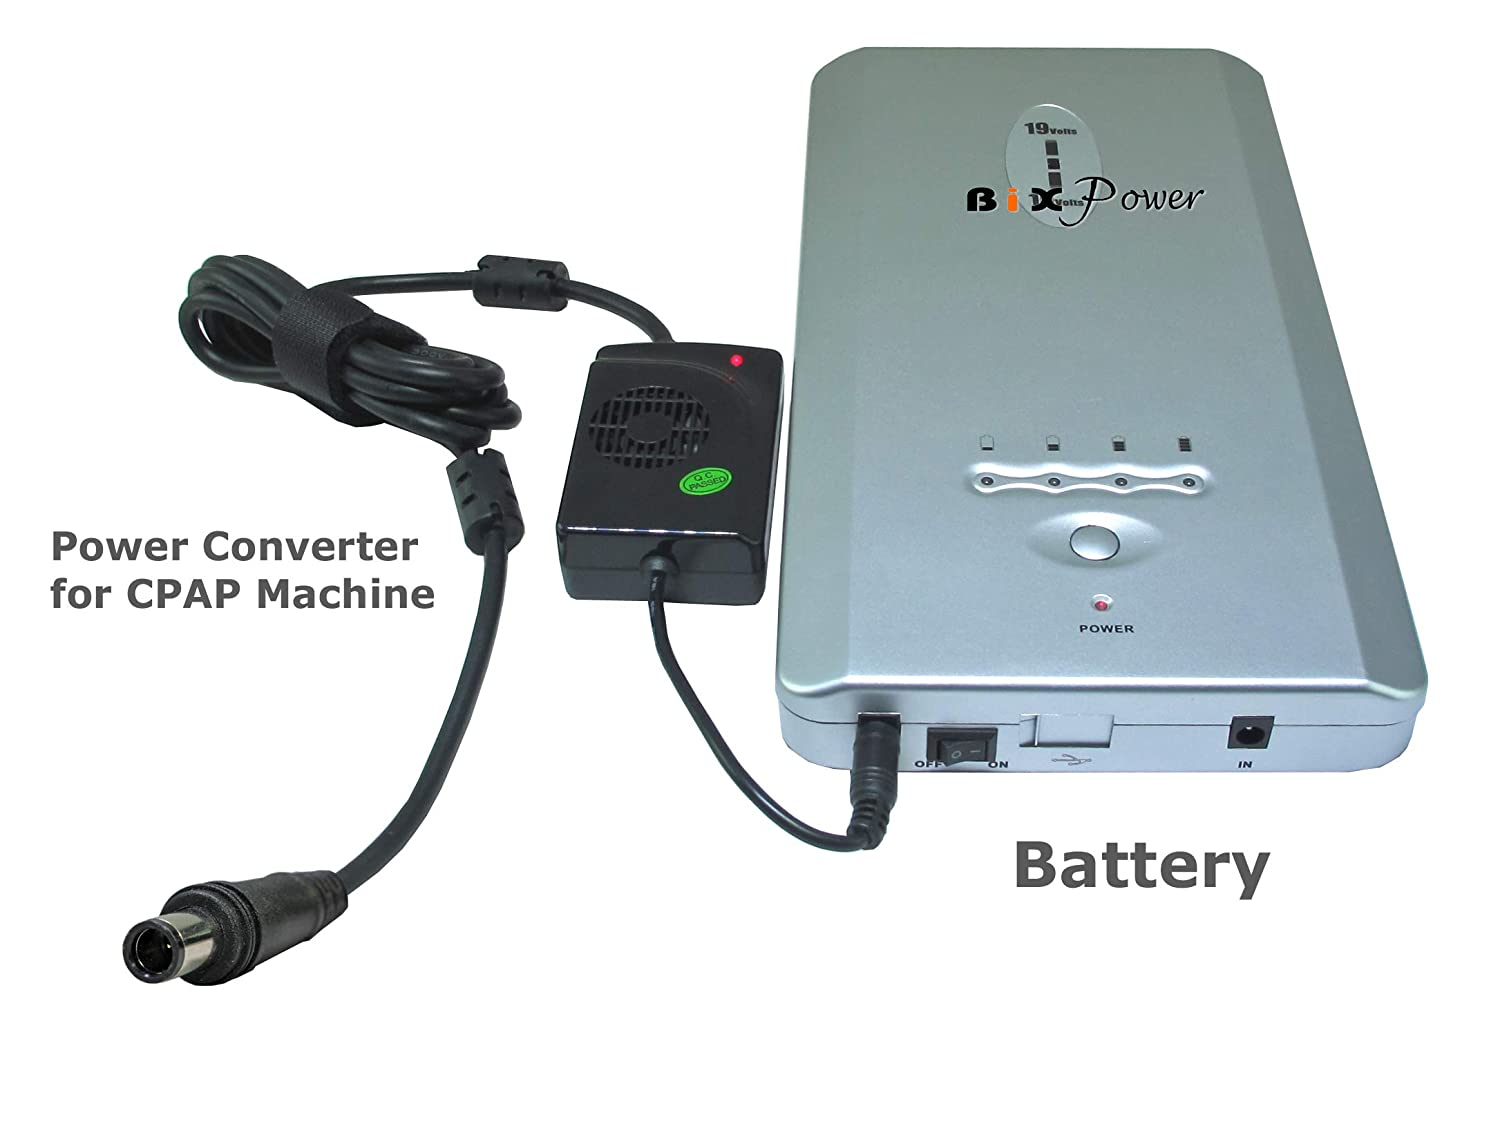 BiXPower Super High Capacity (223 Watt-Hour) Rechargeable Battery for ResMed AirSense 10 CPAP Machine CP220-S10